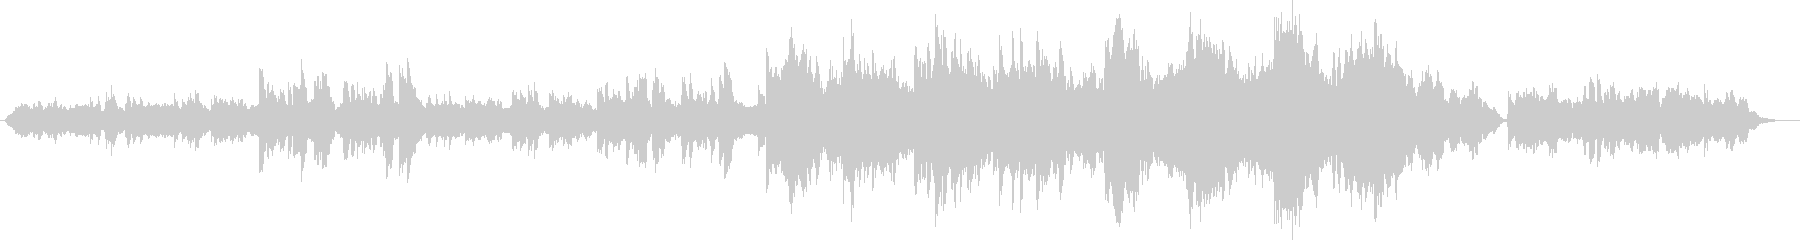 Happiness played by a harp chord's unreproduced waveform